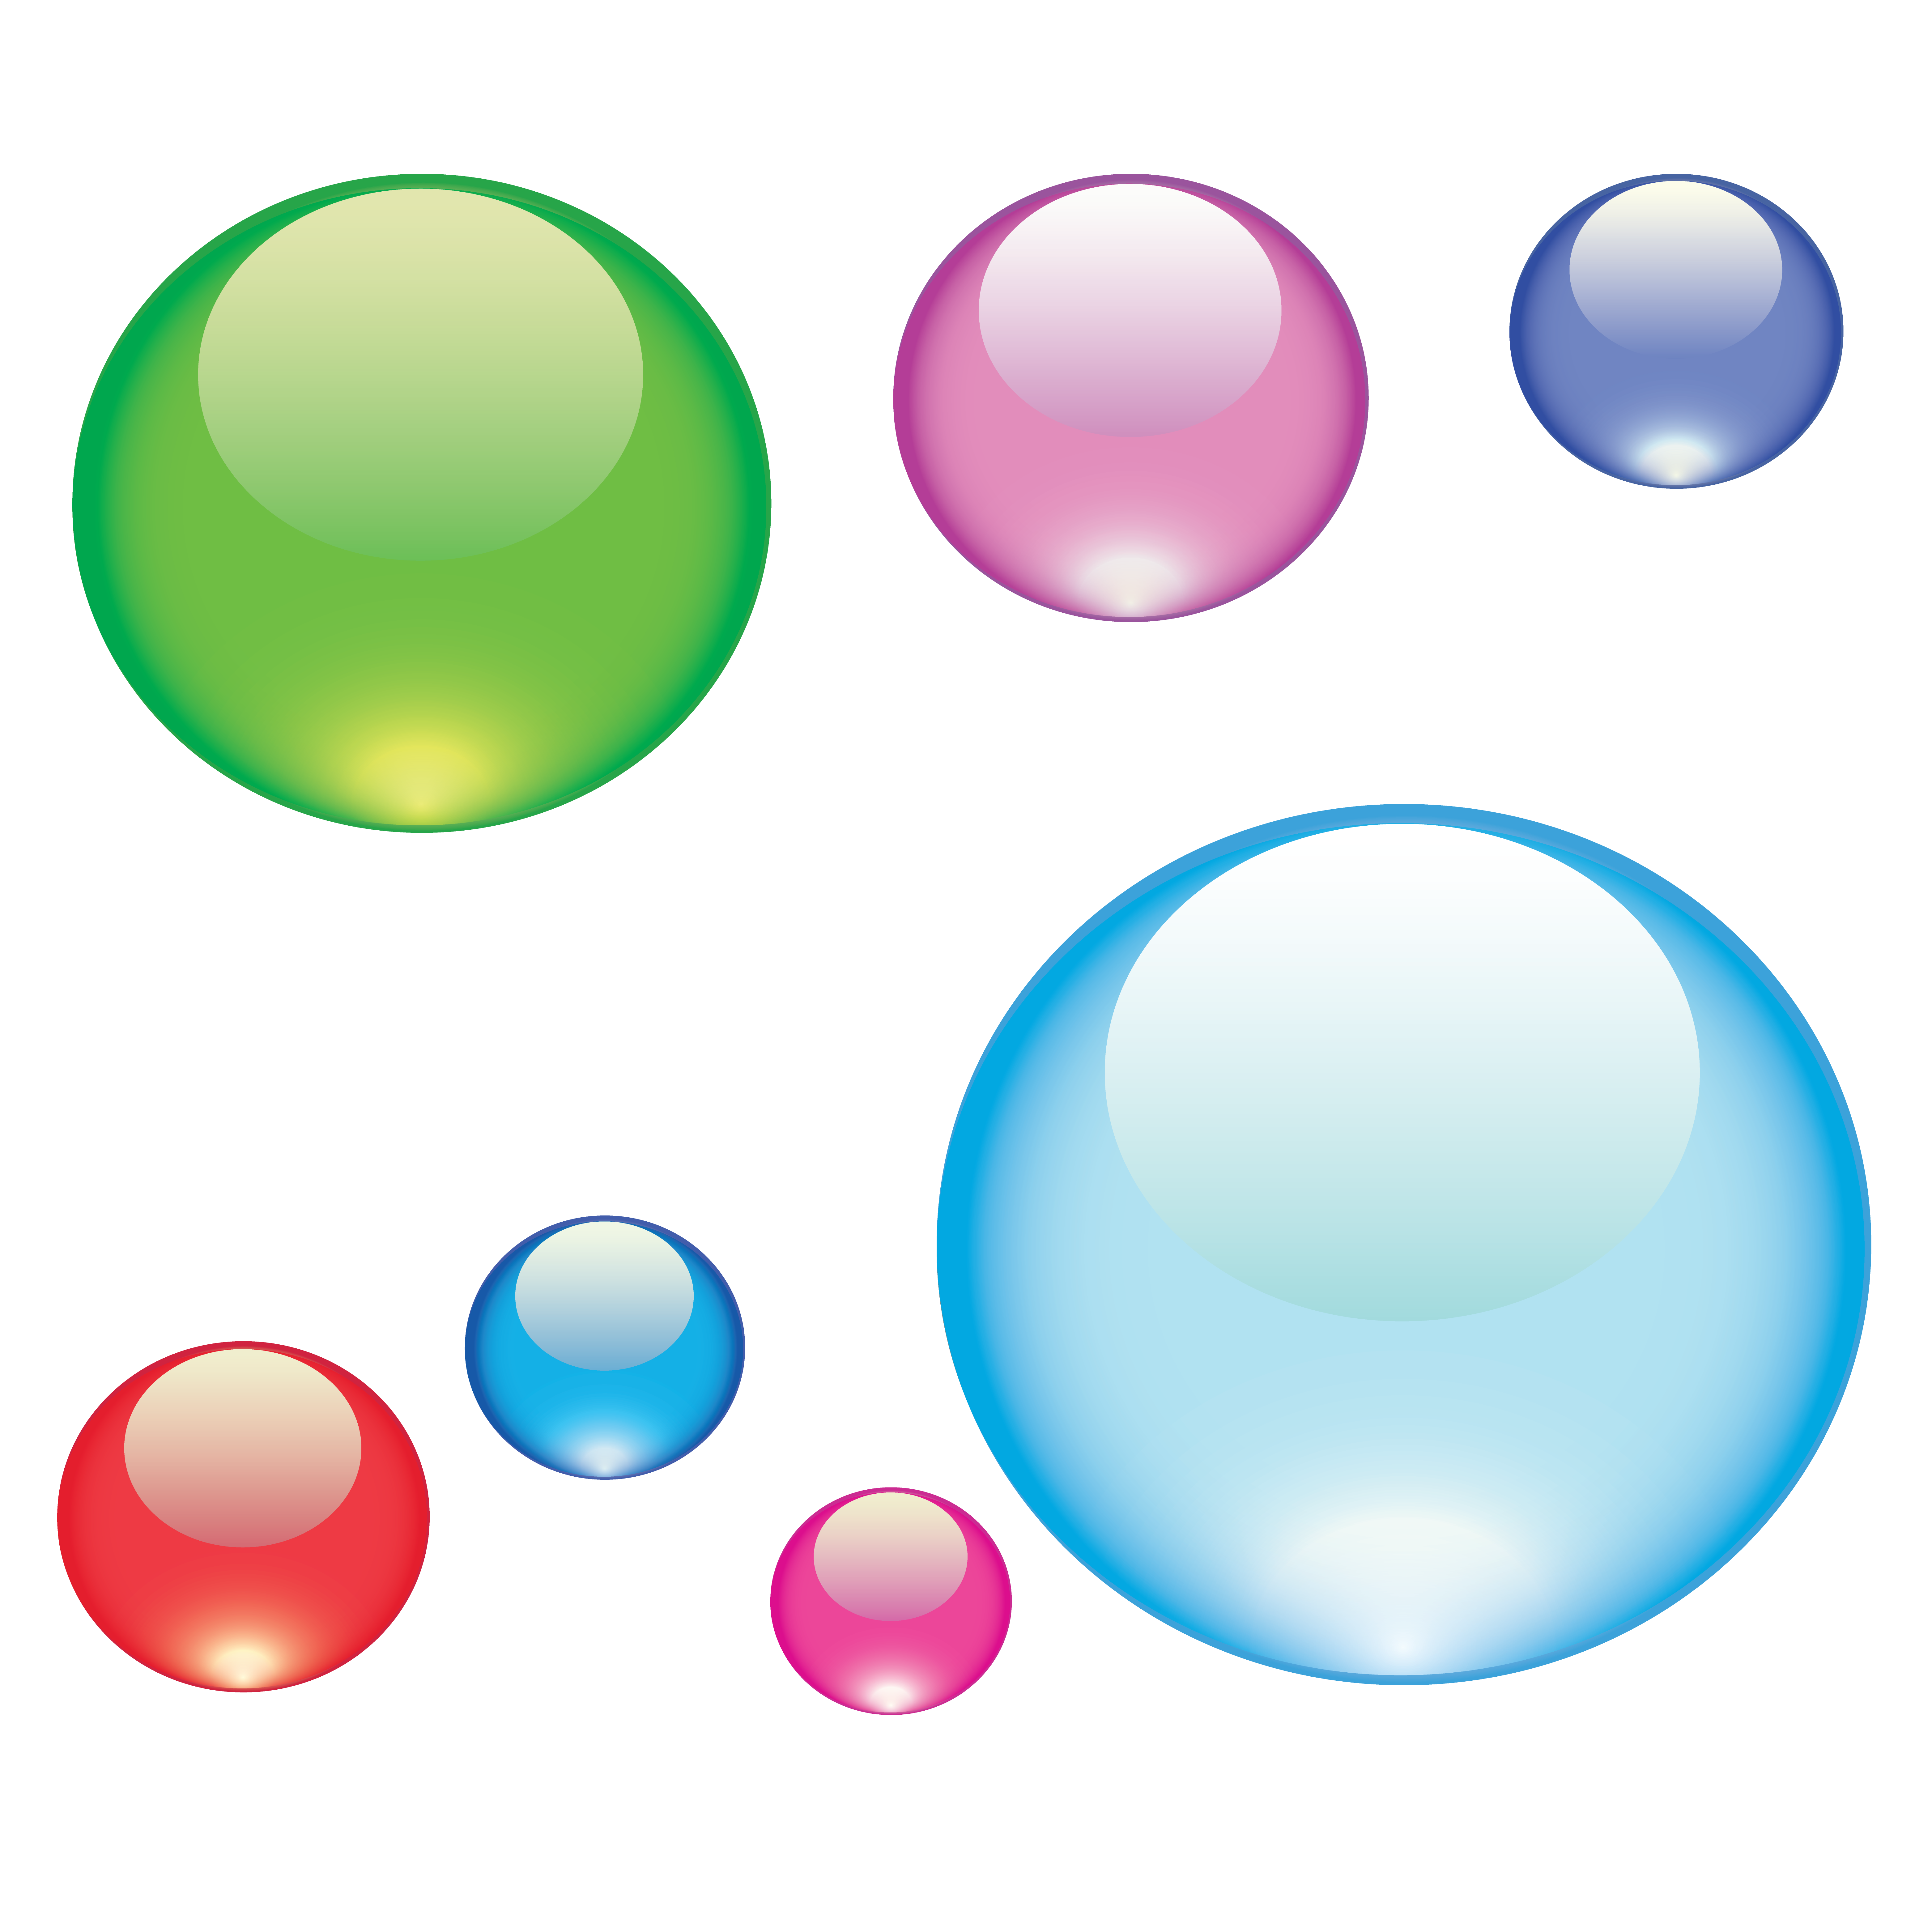 Marble ball frames illustrations. Marbles clipart heavy object